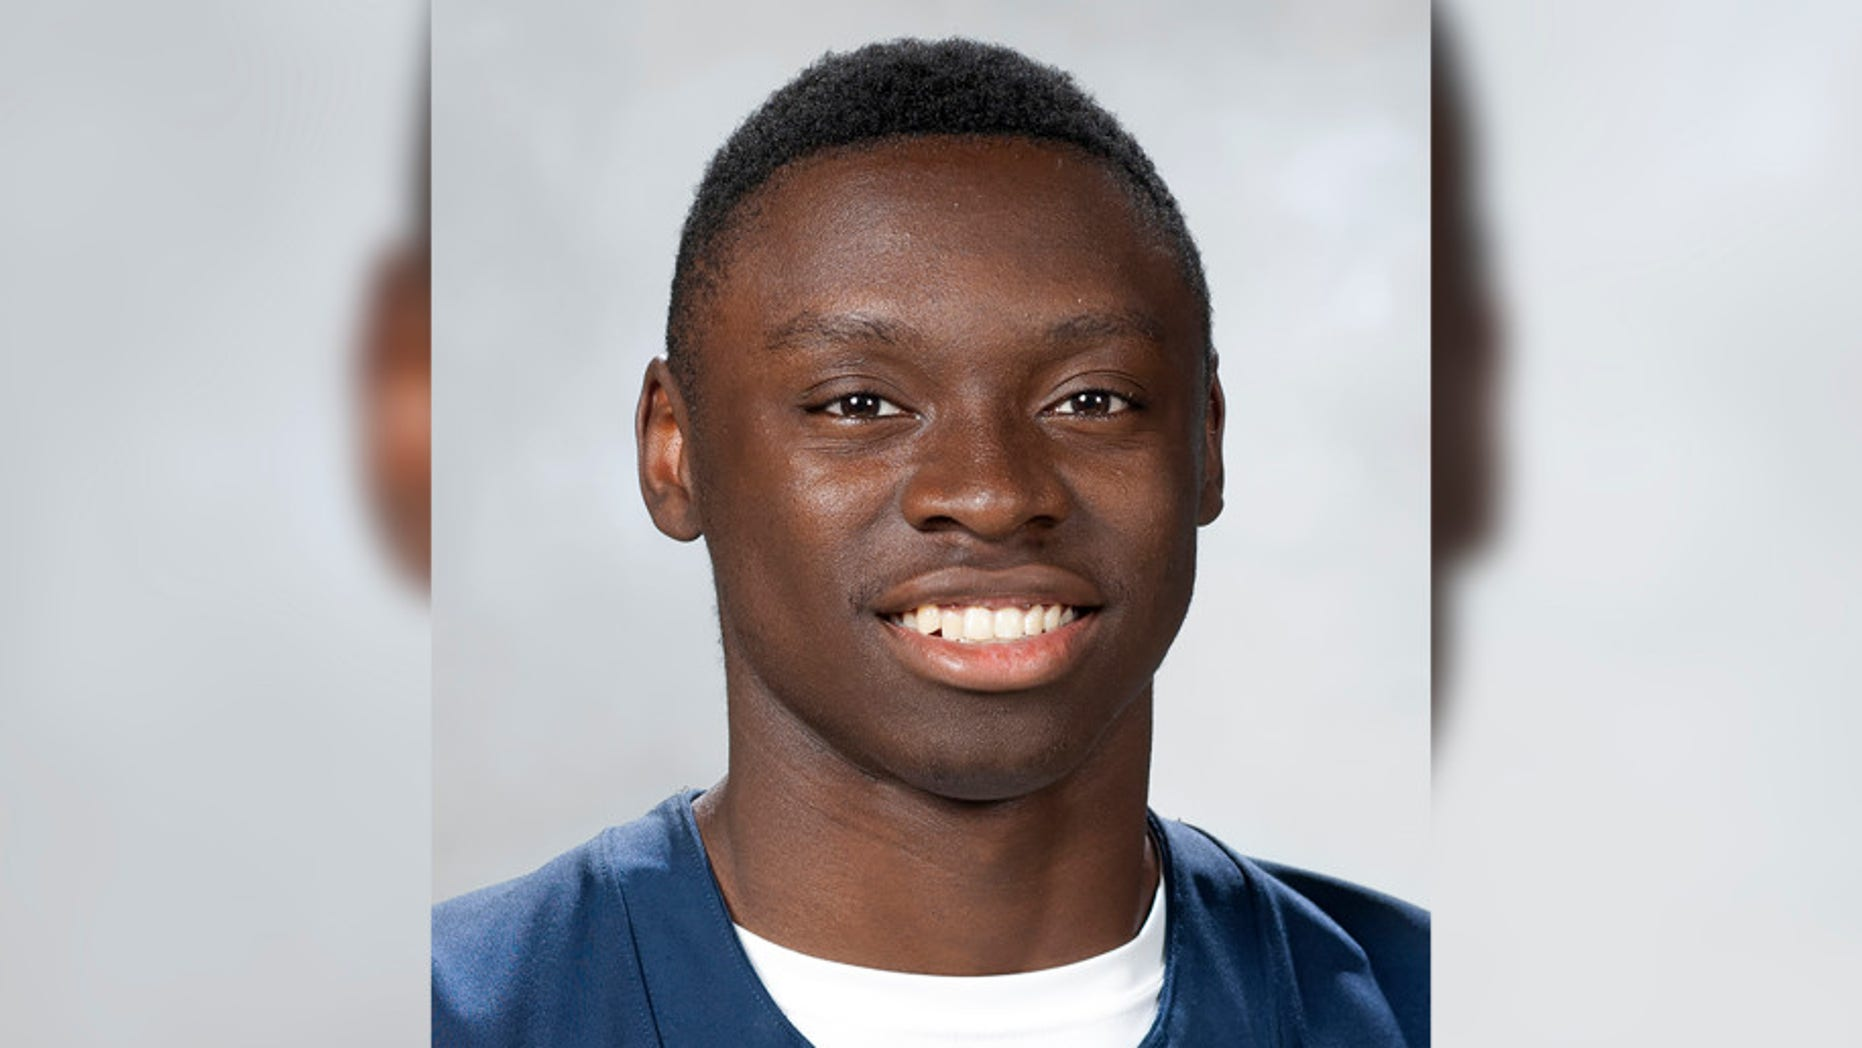 Derek Loccident, a 20-year-old defensive back at the University of Central Oklahoma, had his left foot severed by a train early Sunday.